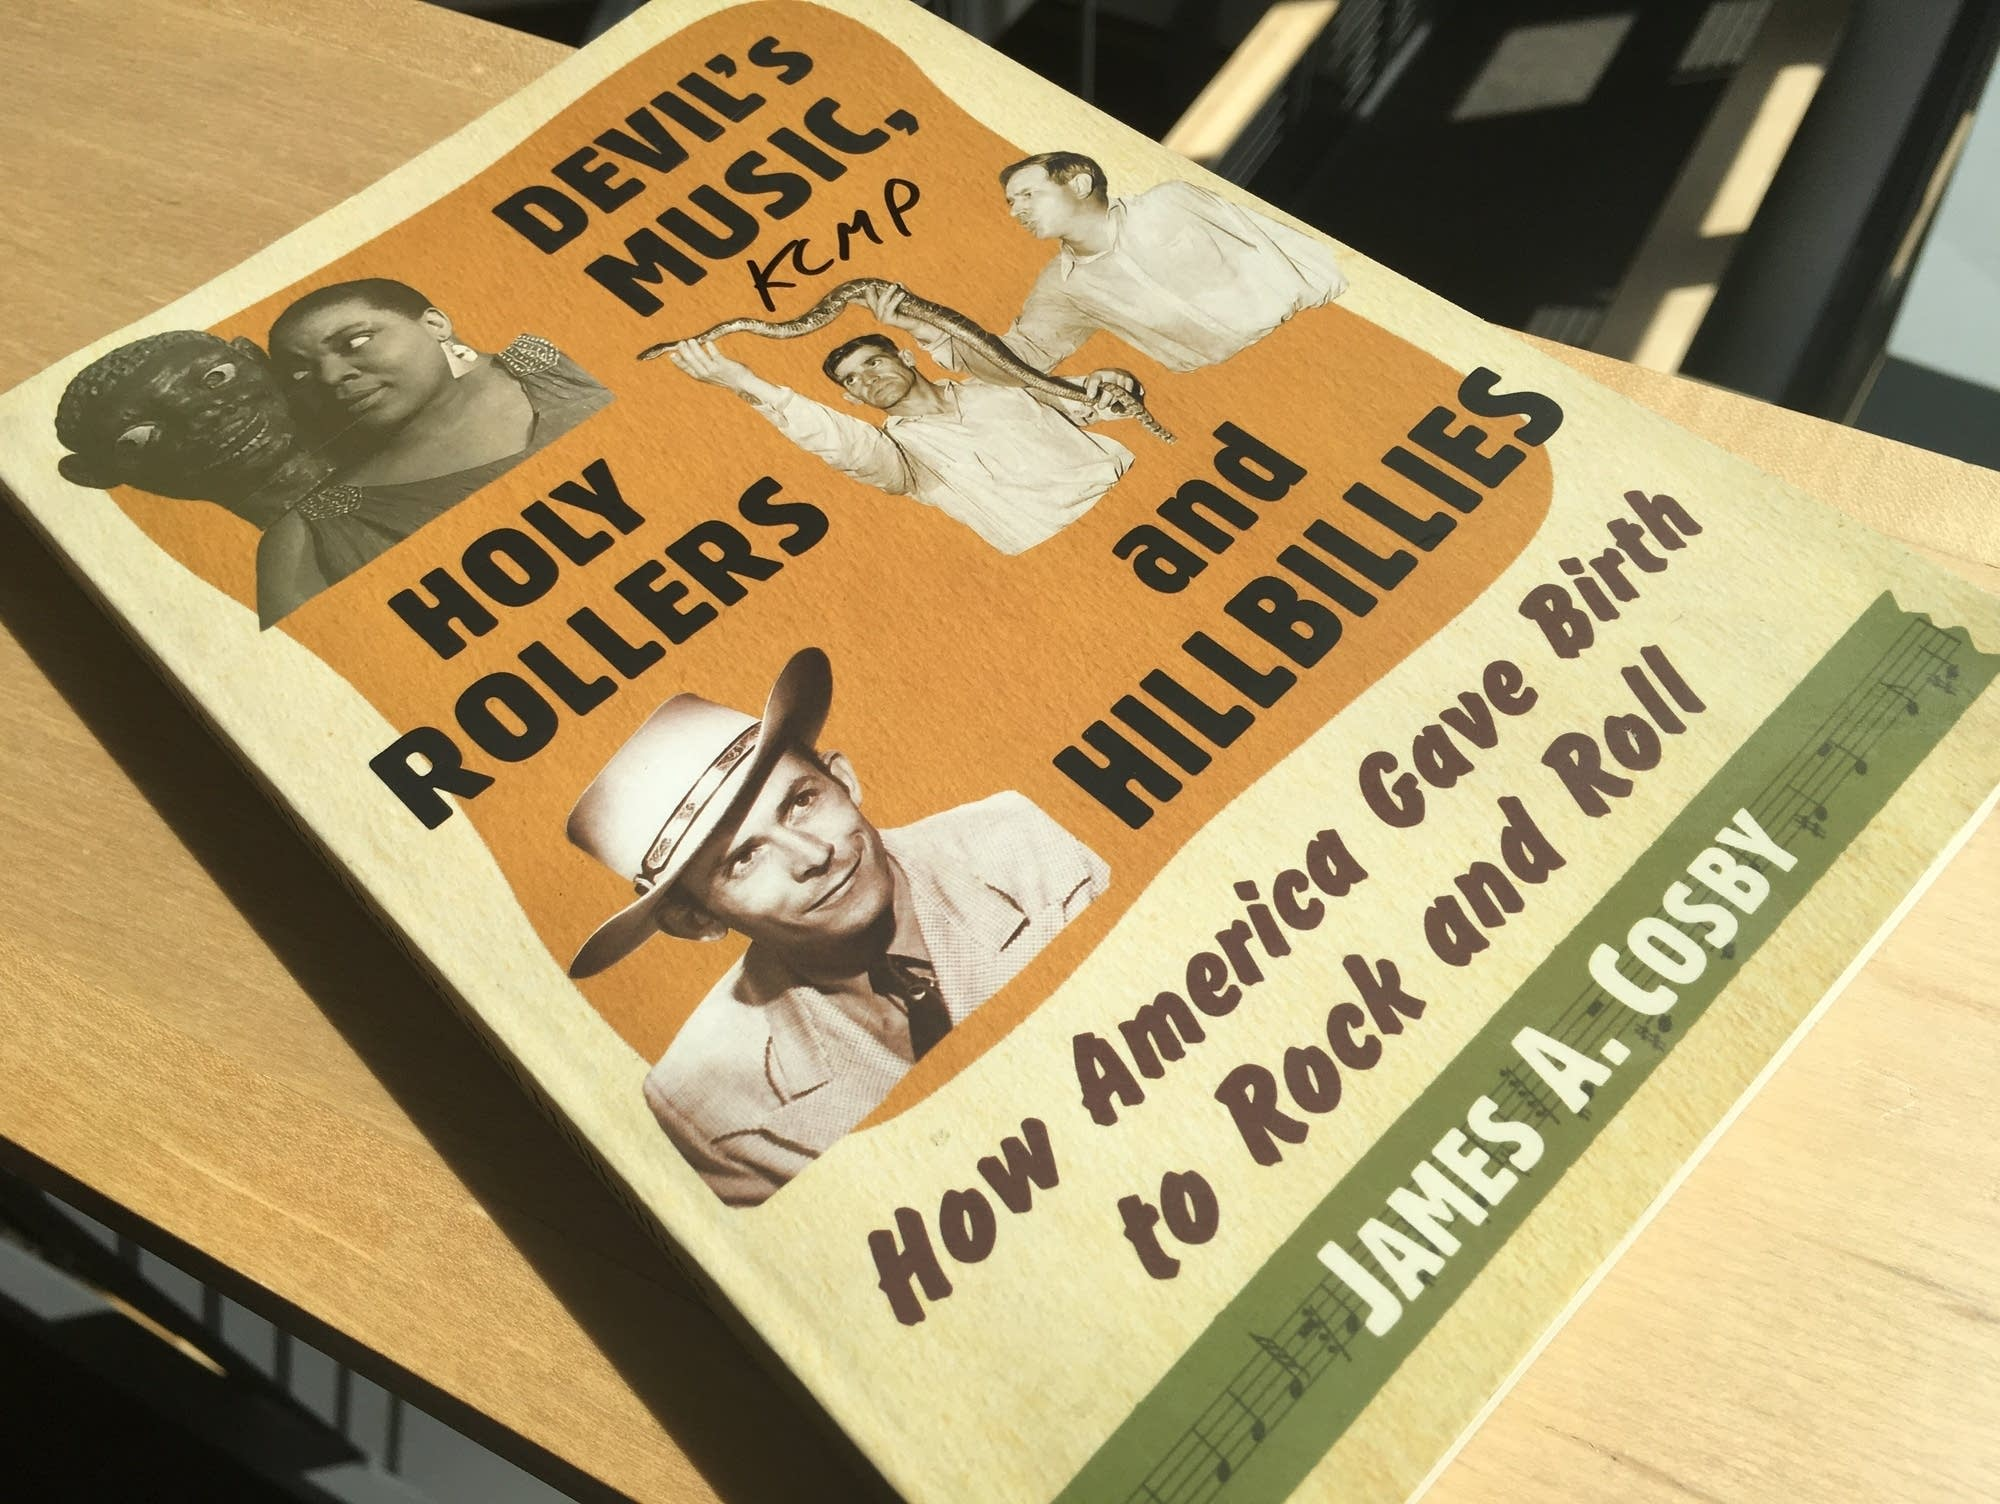 James A. Cosby's 'Devil's Music, Holy Rollers and Hillbillies'